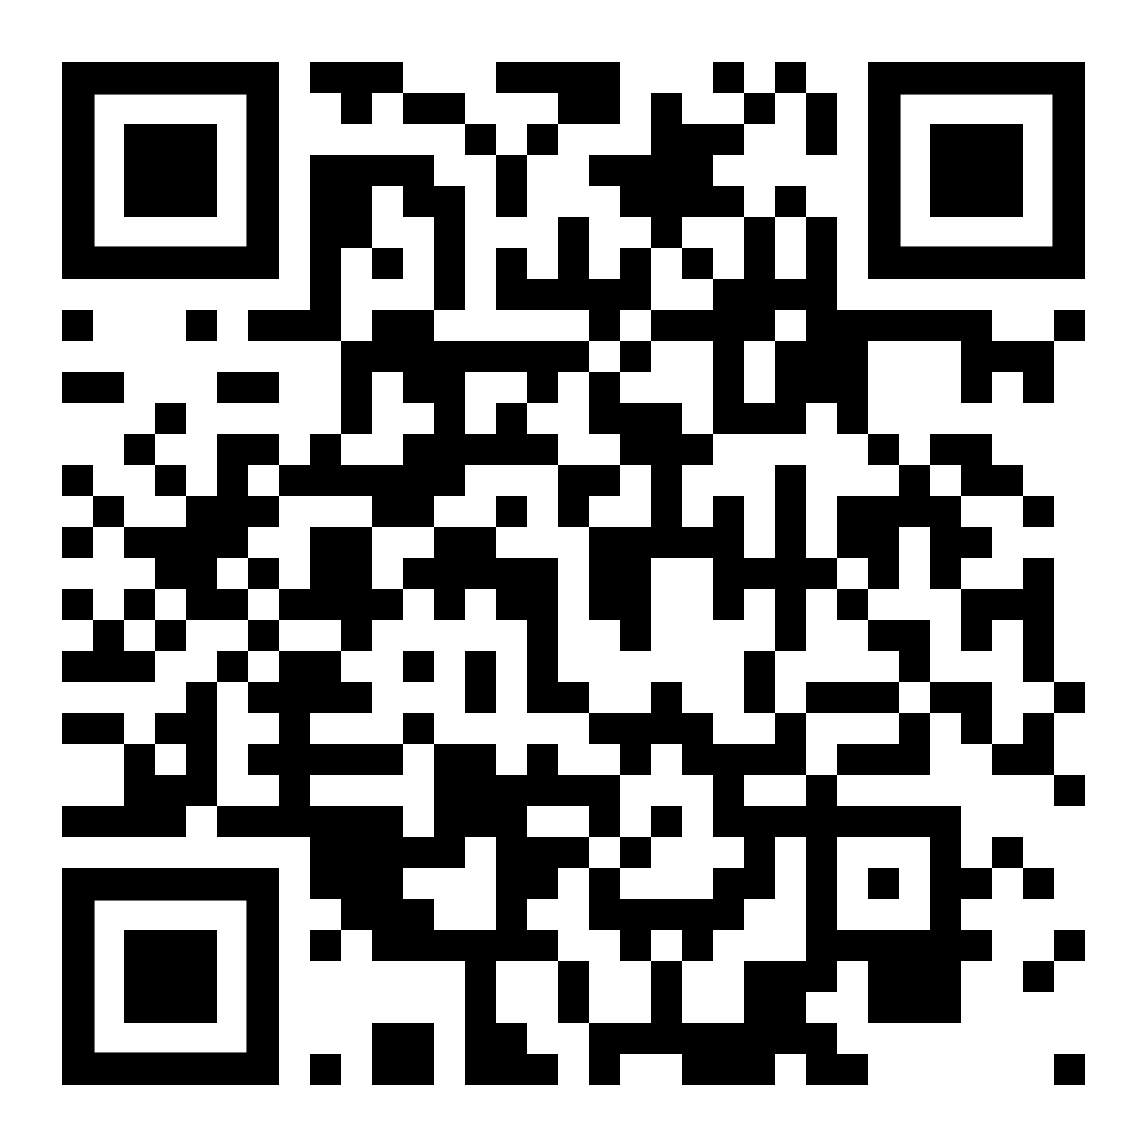 Click to see the qr code